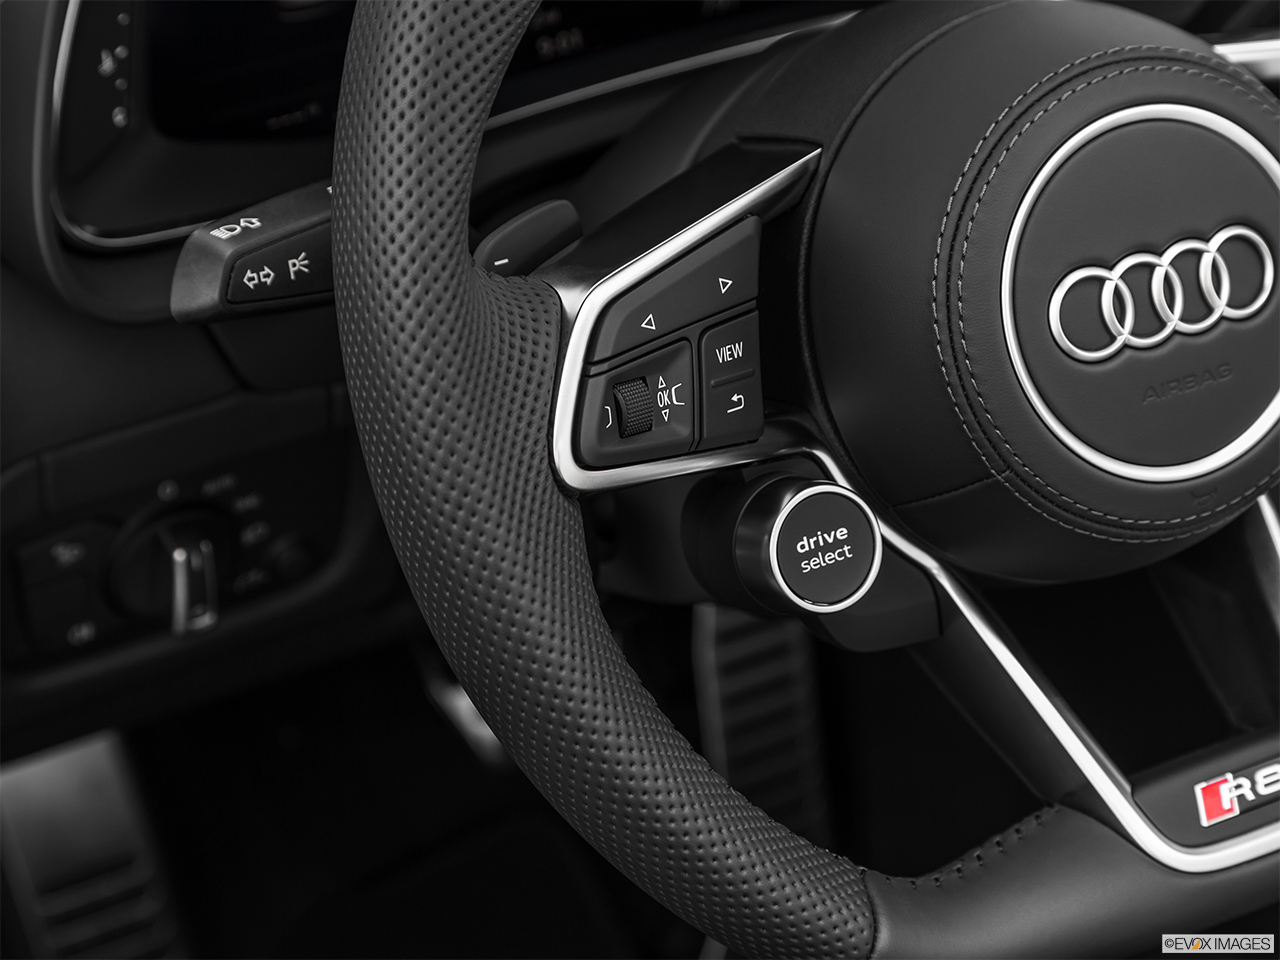 2020 Audi R8 Spyder V10 Steering Wheel Controls (Left Side)